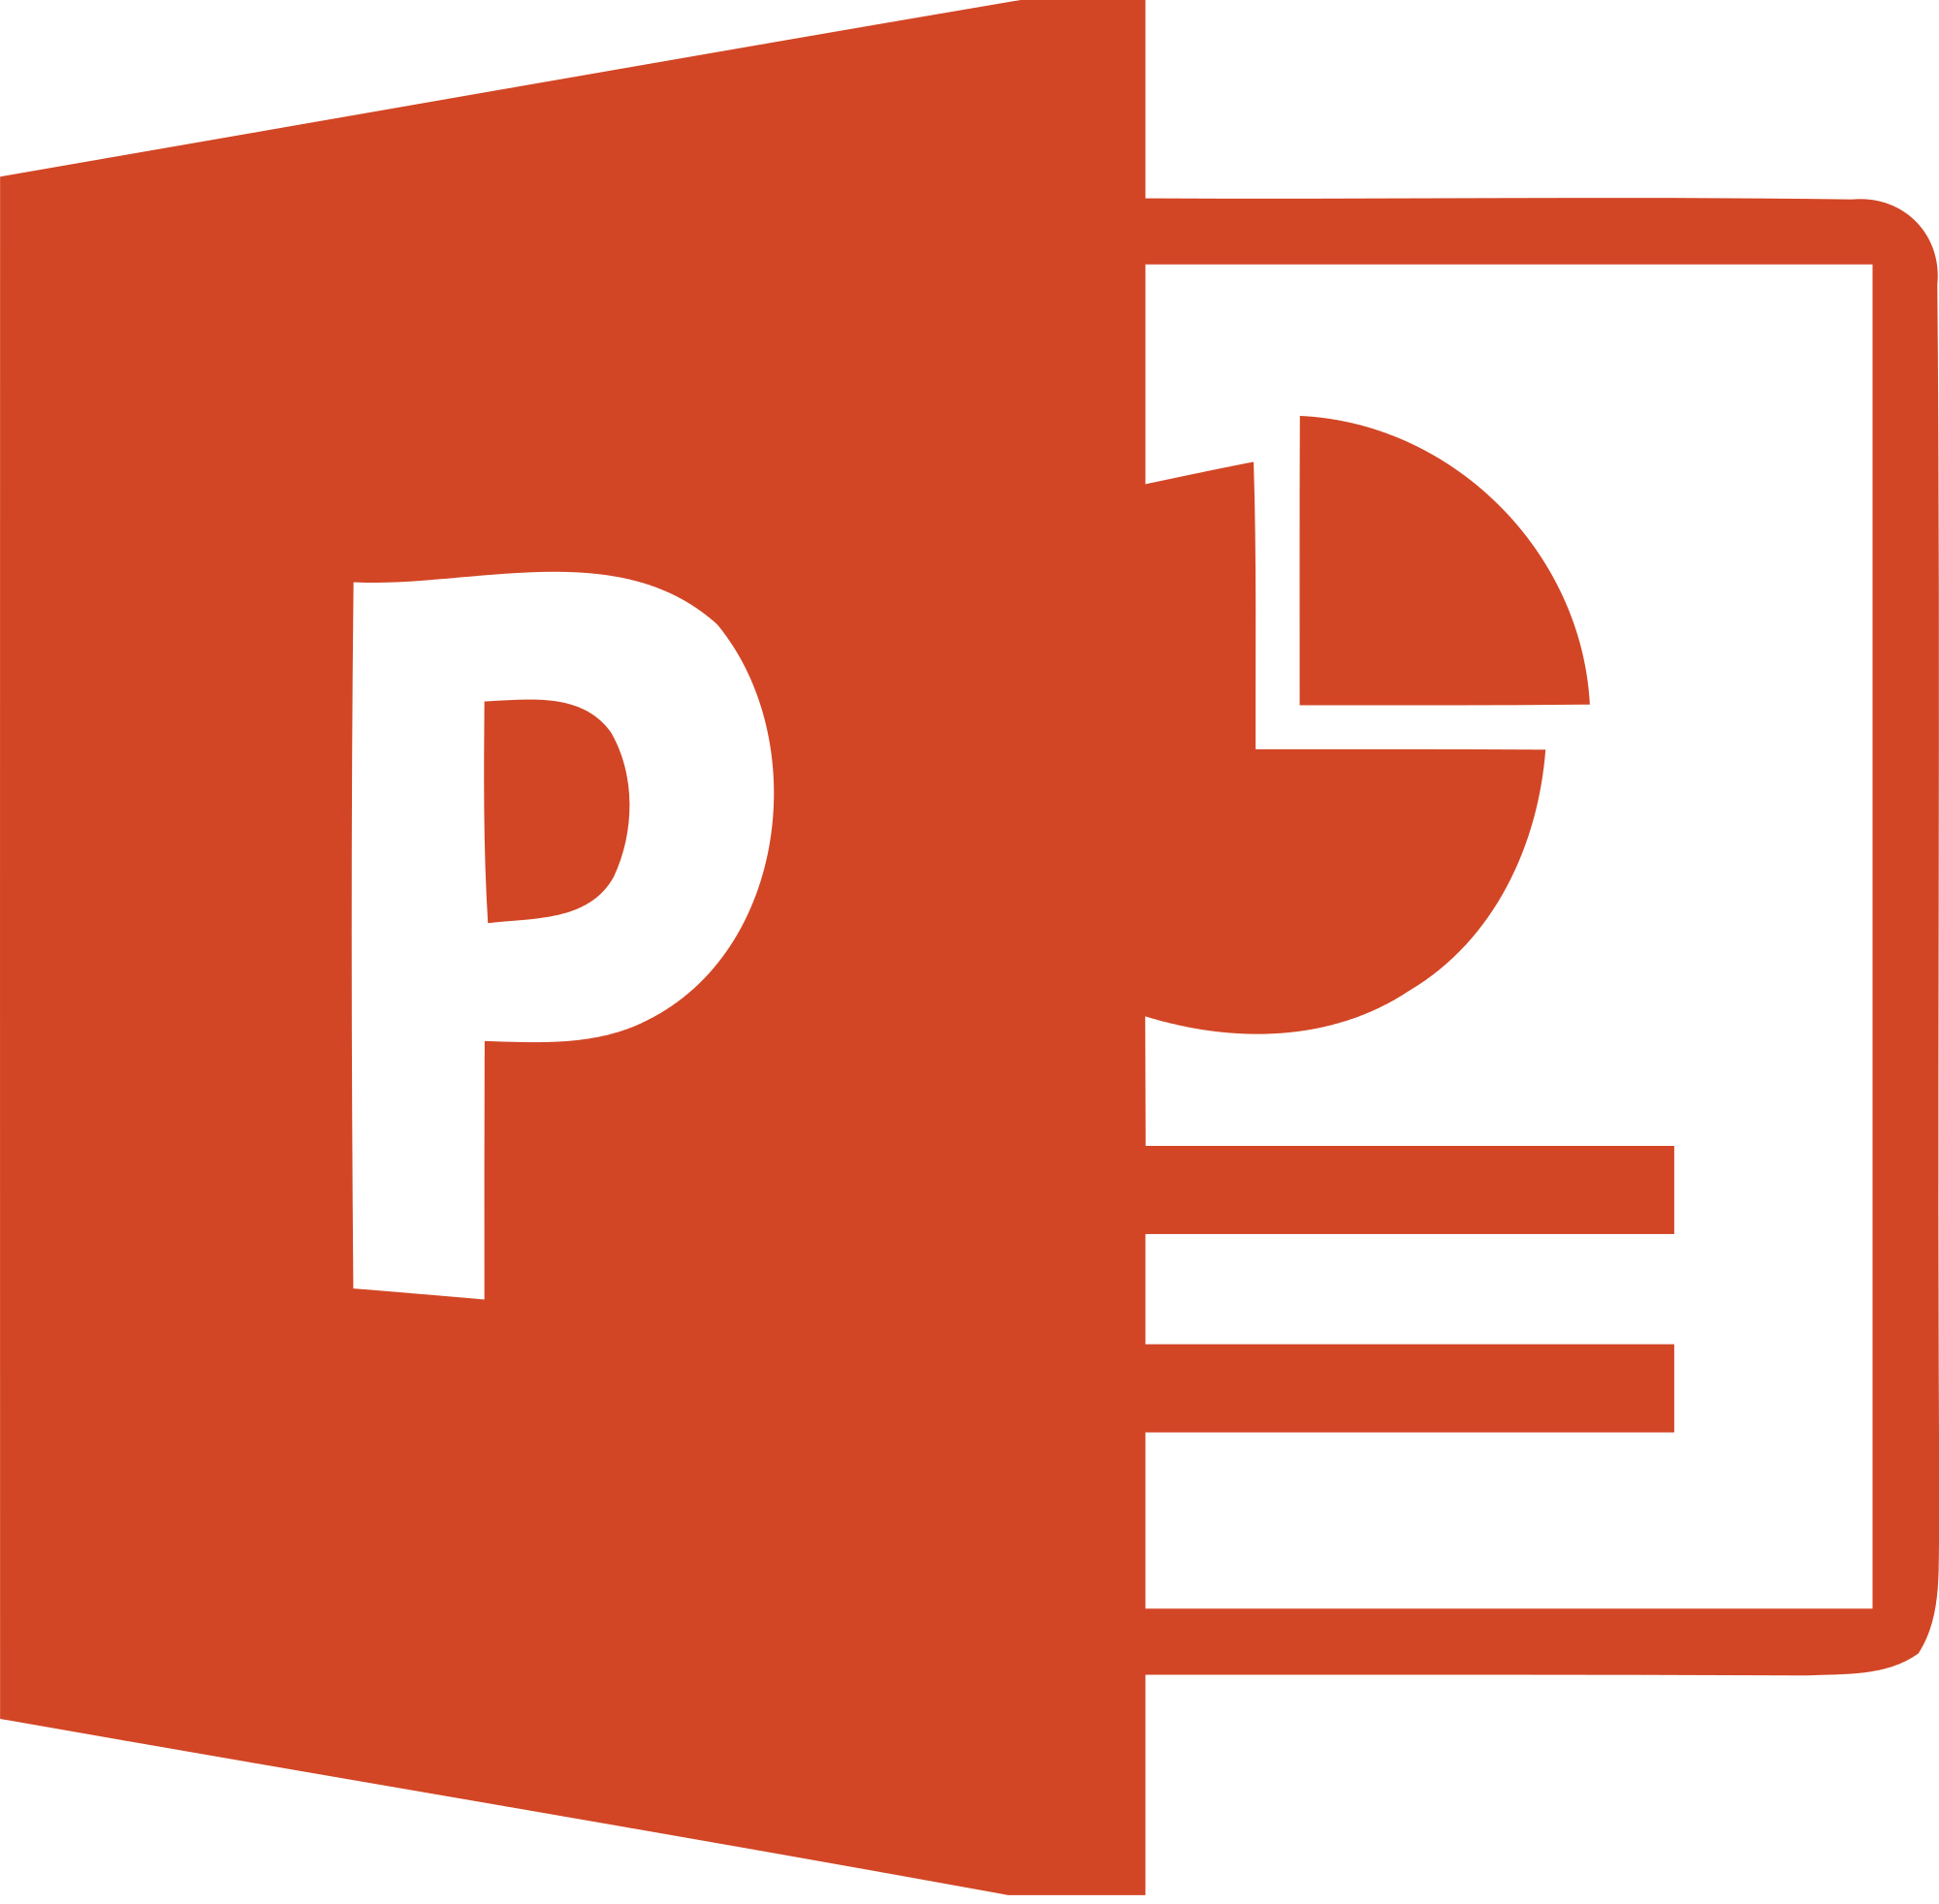 Logo Powerpoint 2013 ®Microsoft Corporation